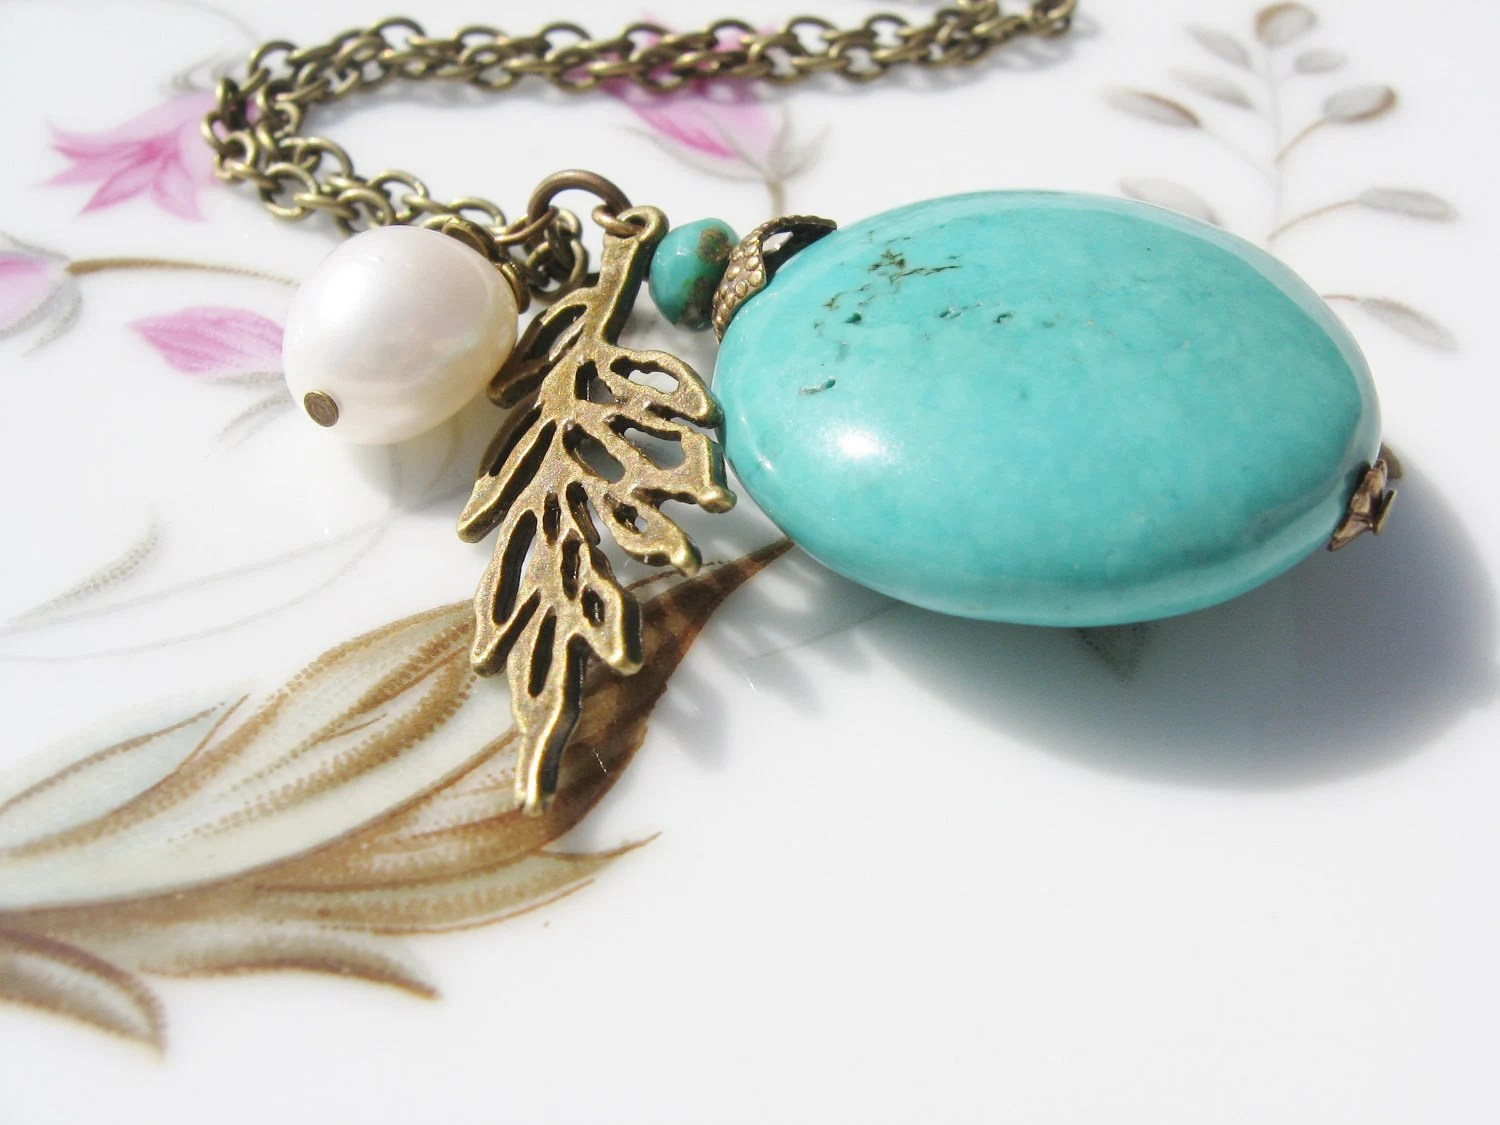 Turquoise Charm Necklace - Blue Magnesite Stone, Leaf Charm, Freshwater Pearl, Antiqued Brass Chain